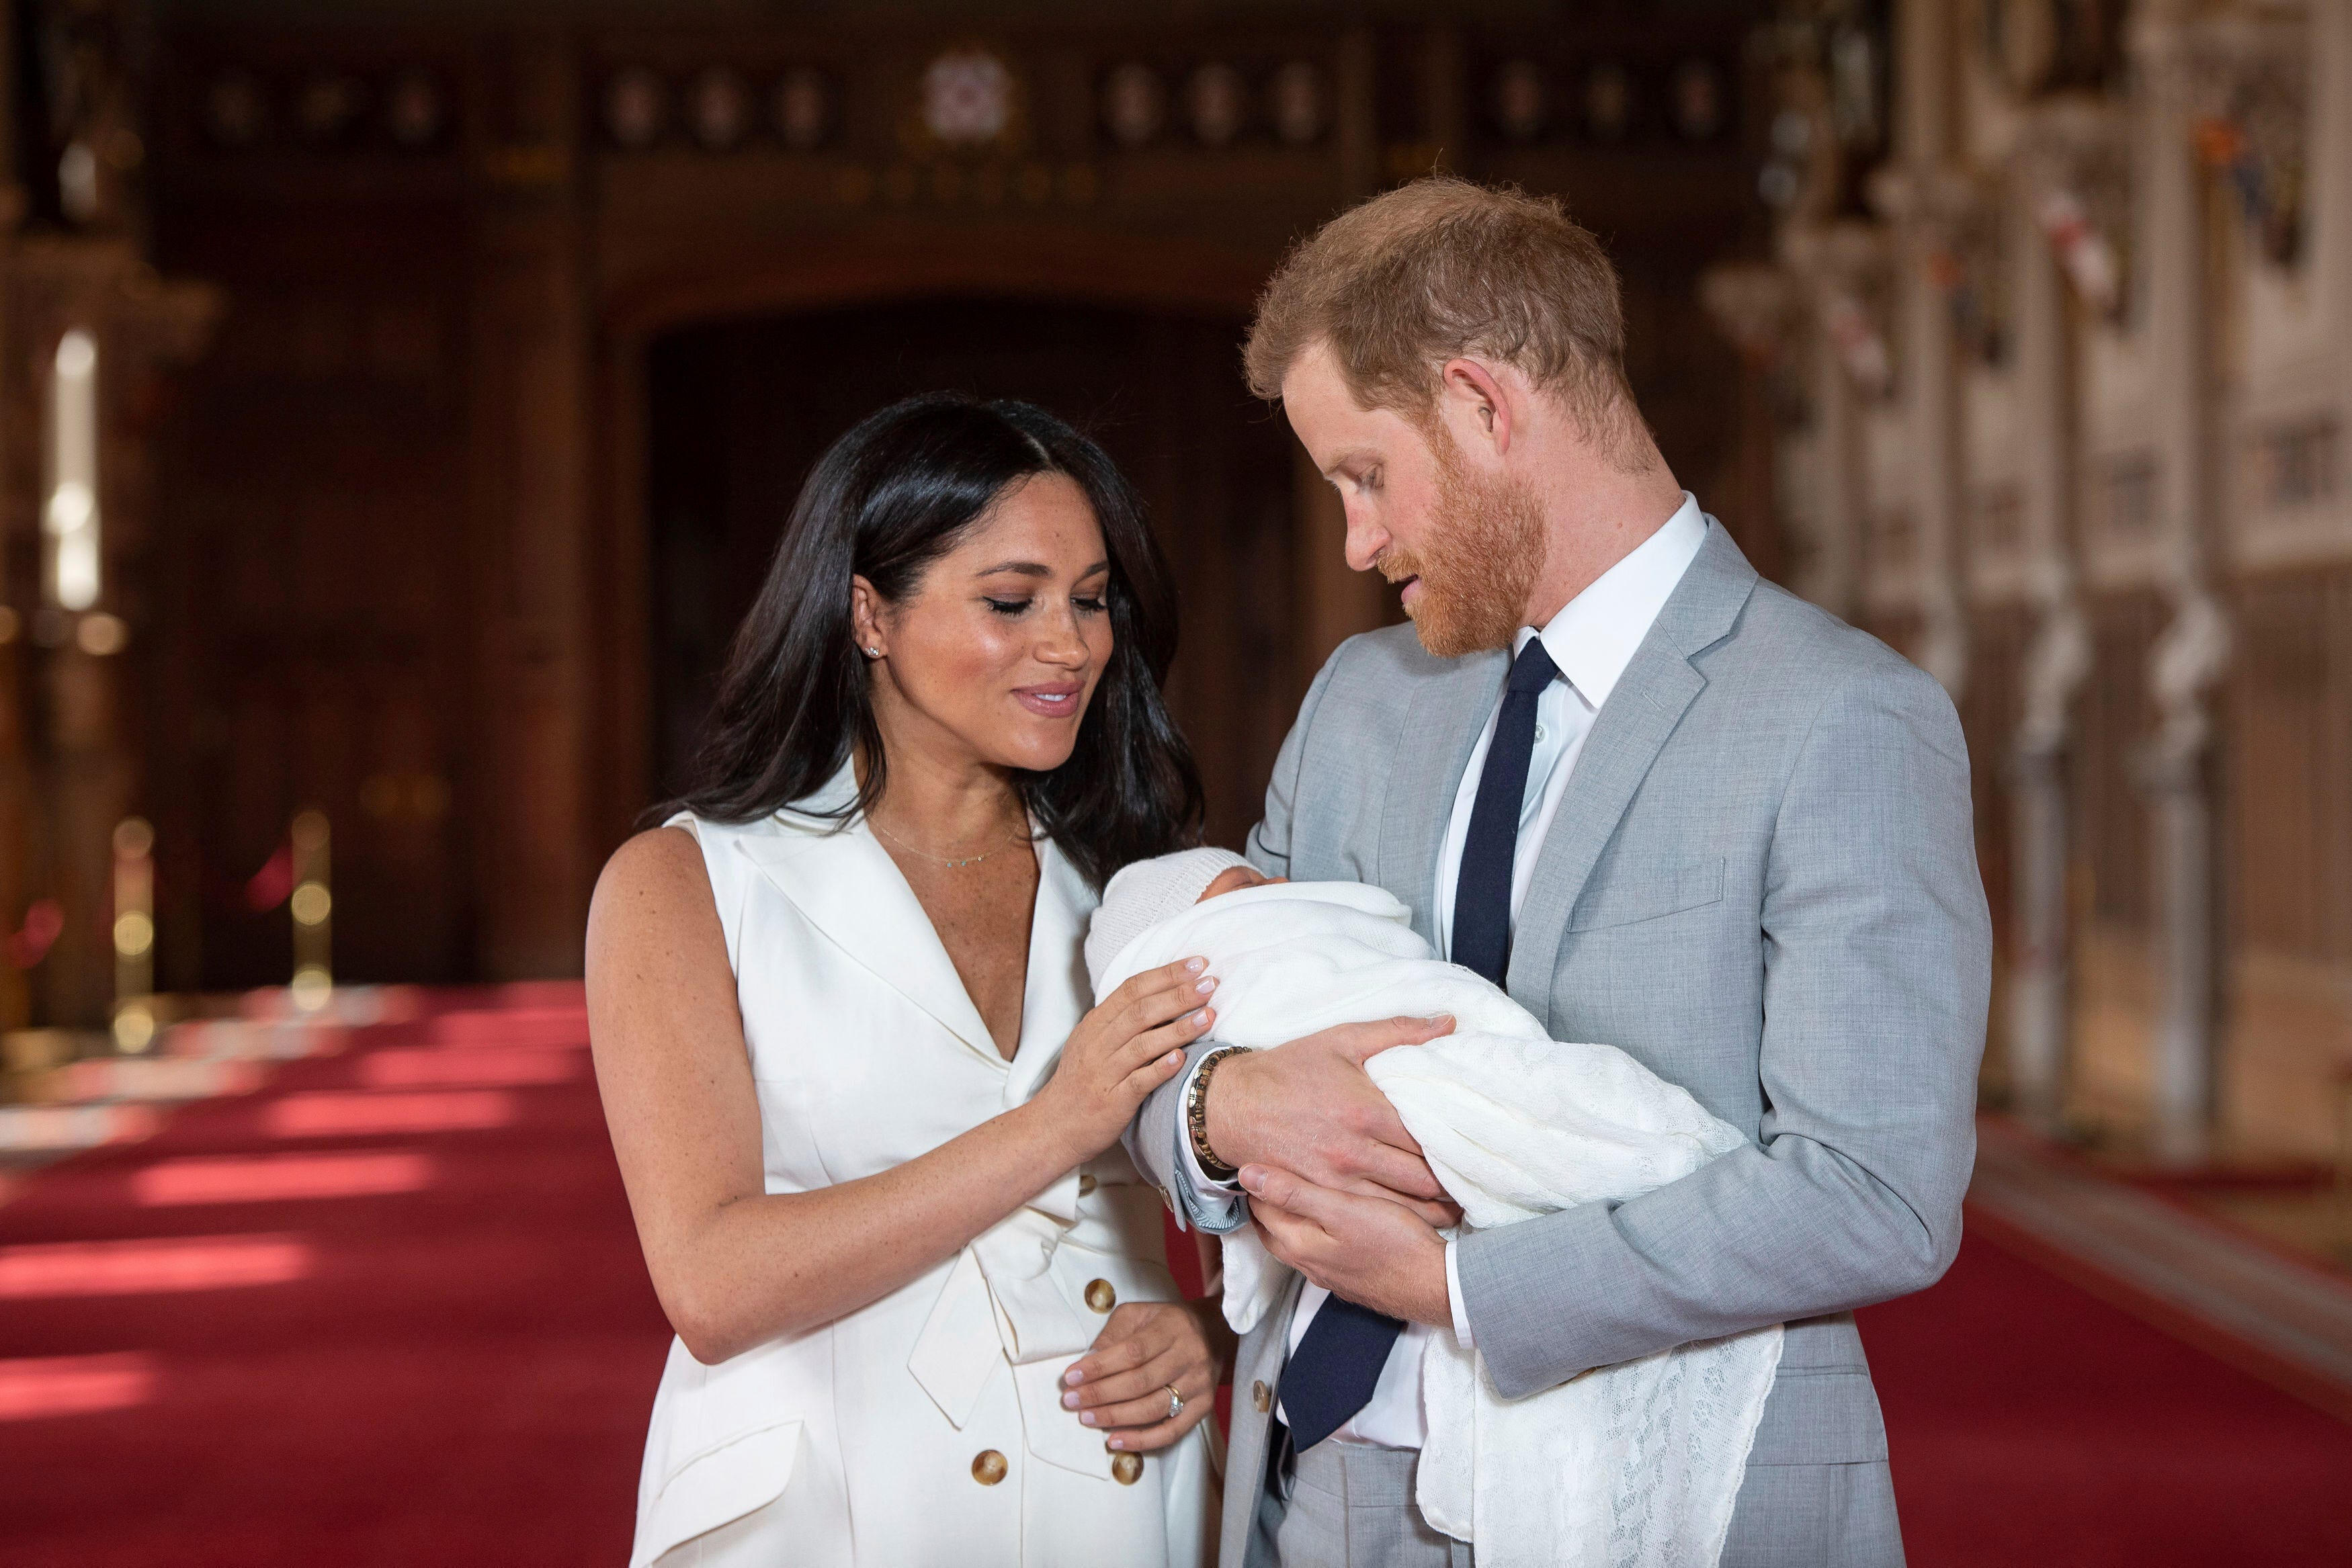 Harry and Meghan with their baby, Archie